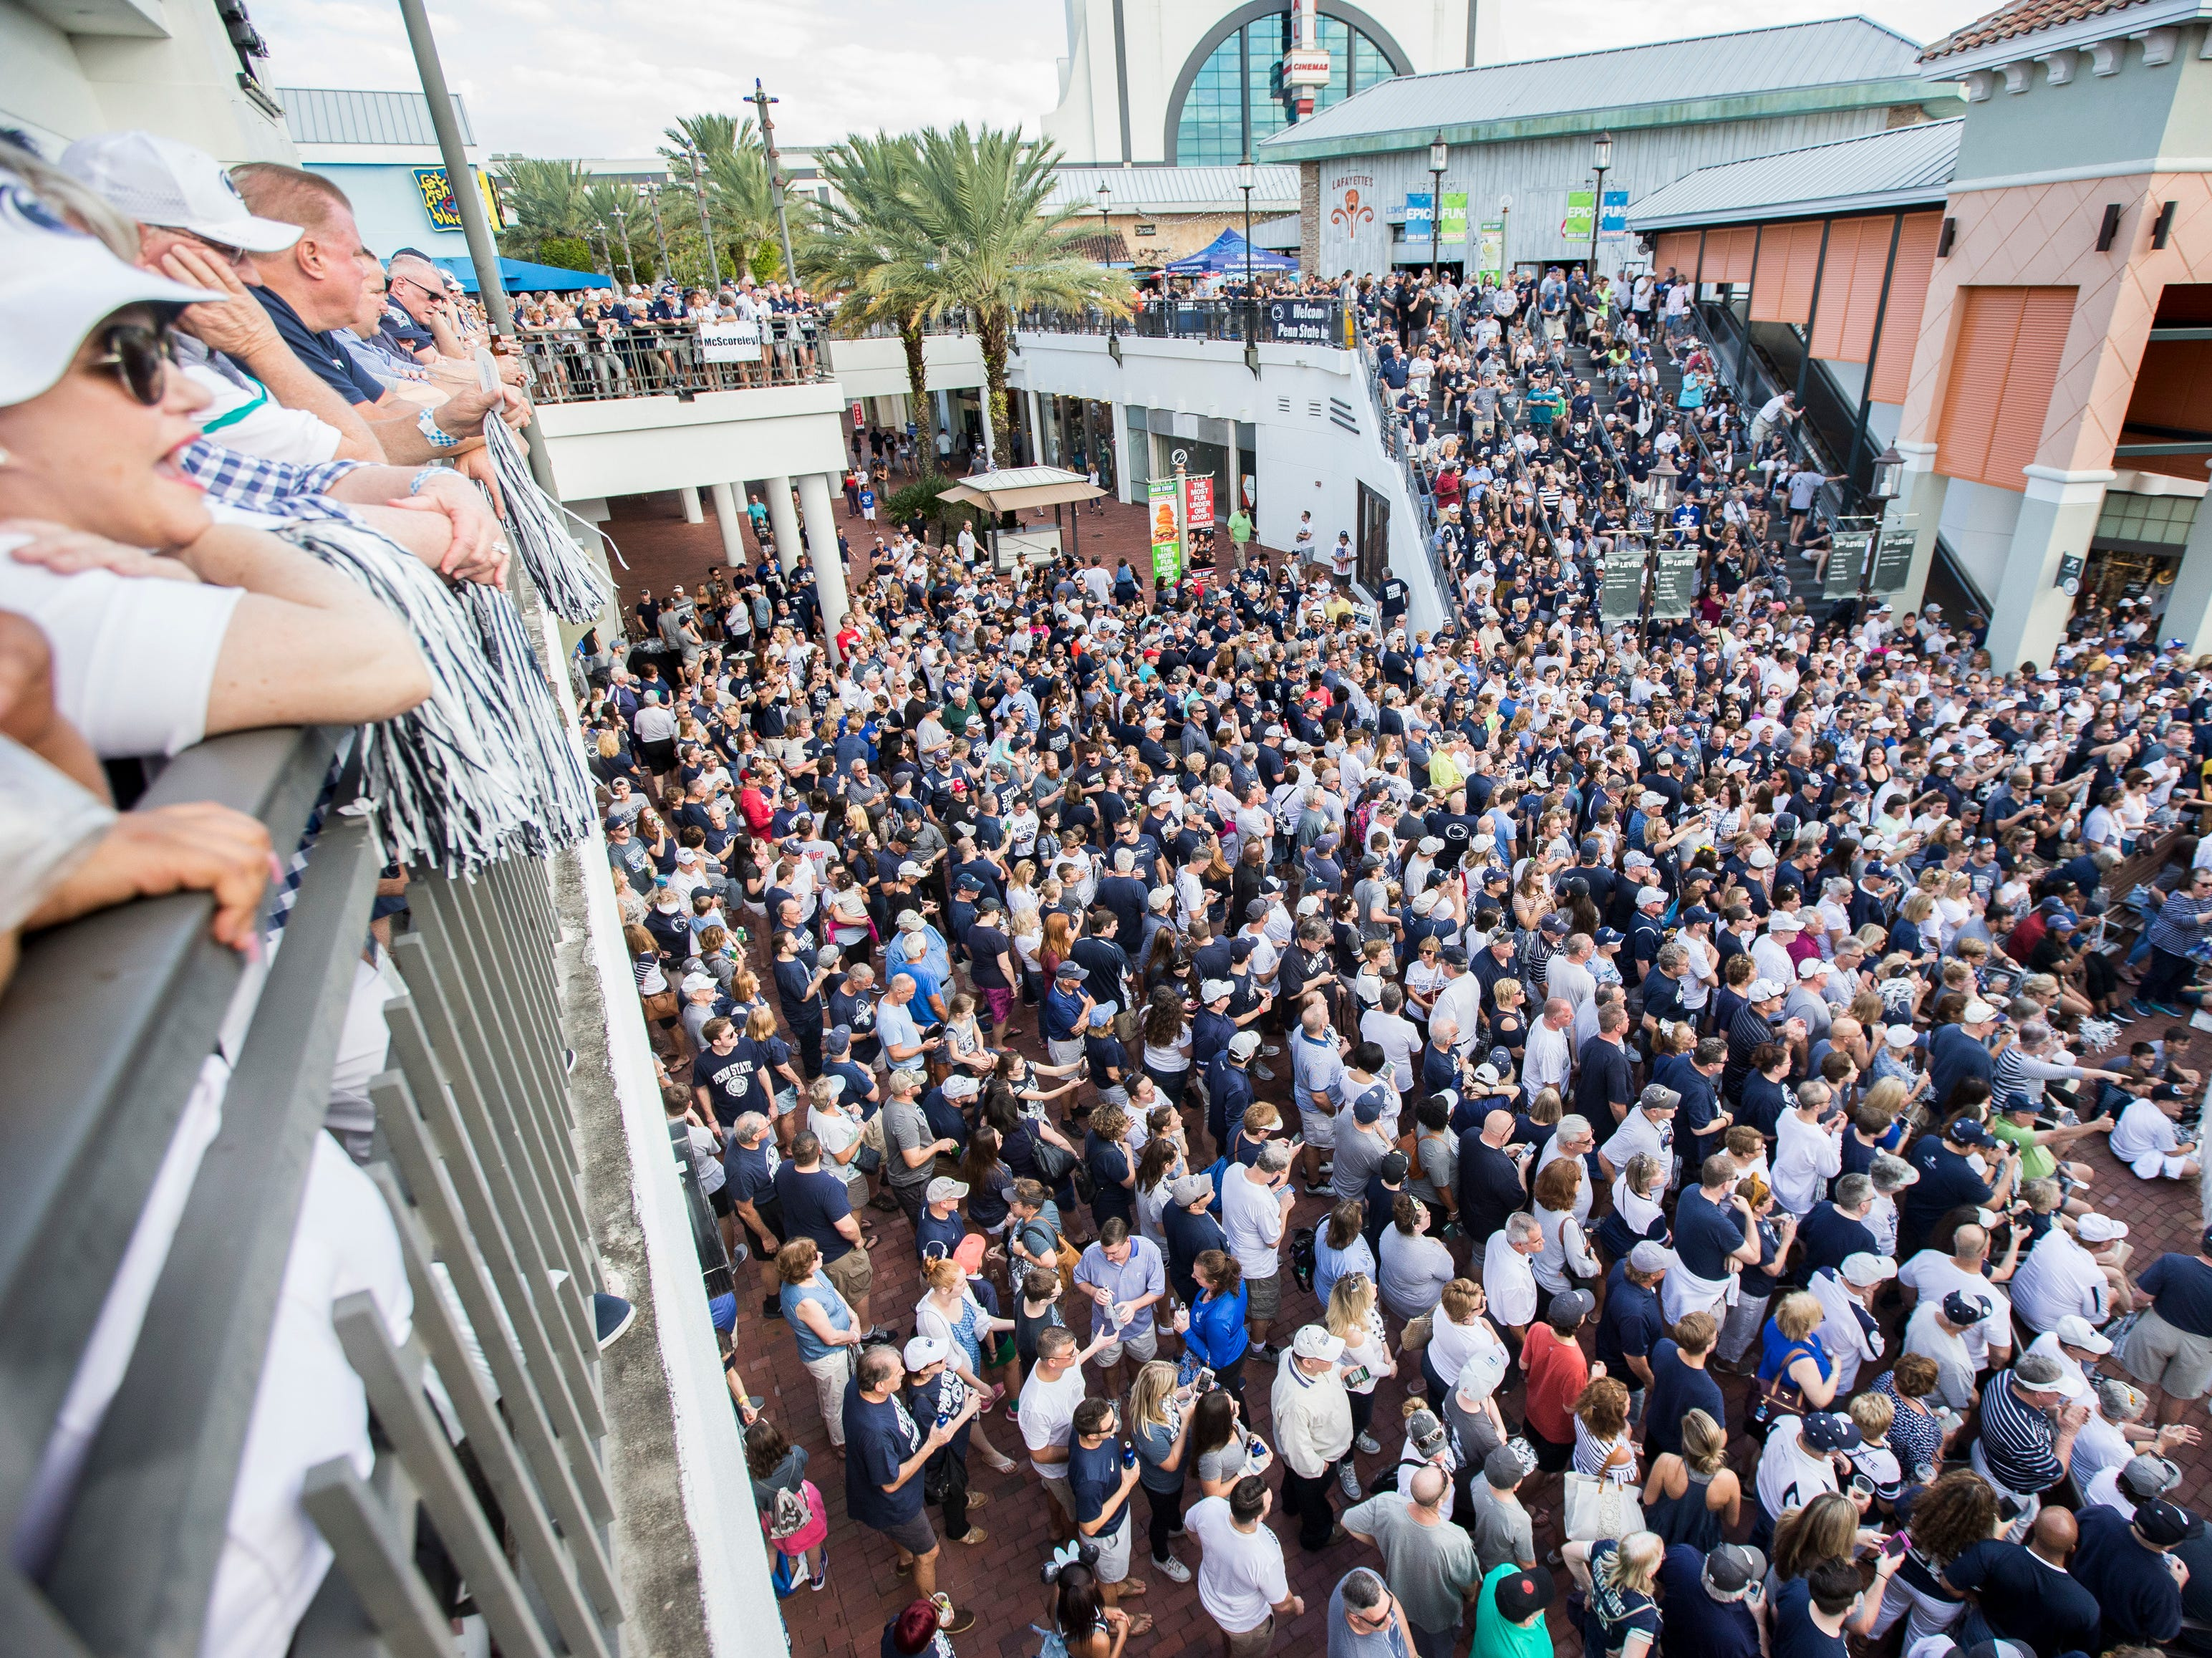 Penn State fans atttend the Citrus Bowl college football game pep rally in Orlando, Fla., Monday, Dec. 31, 2018. (Joe Hermitt/The Patriot-News via AP)